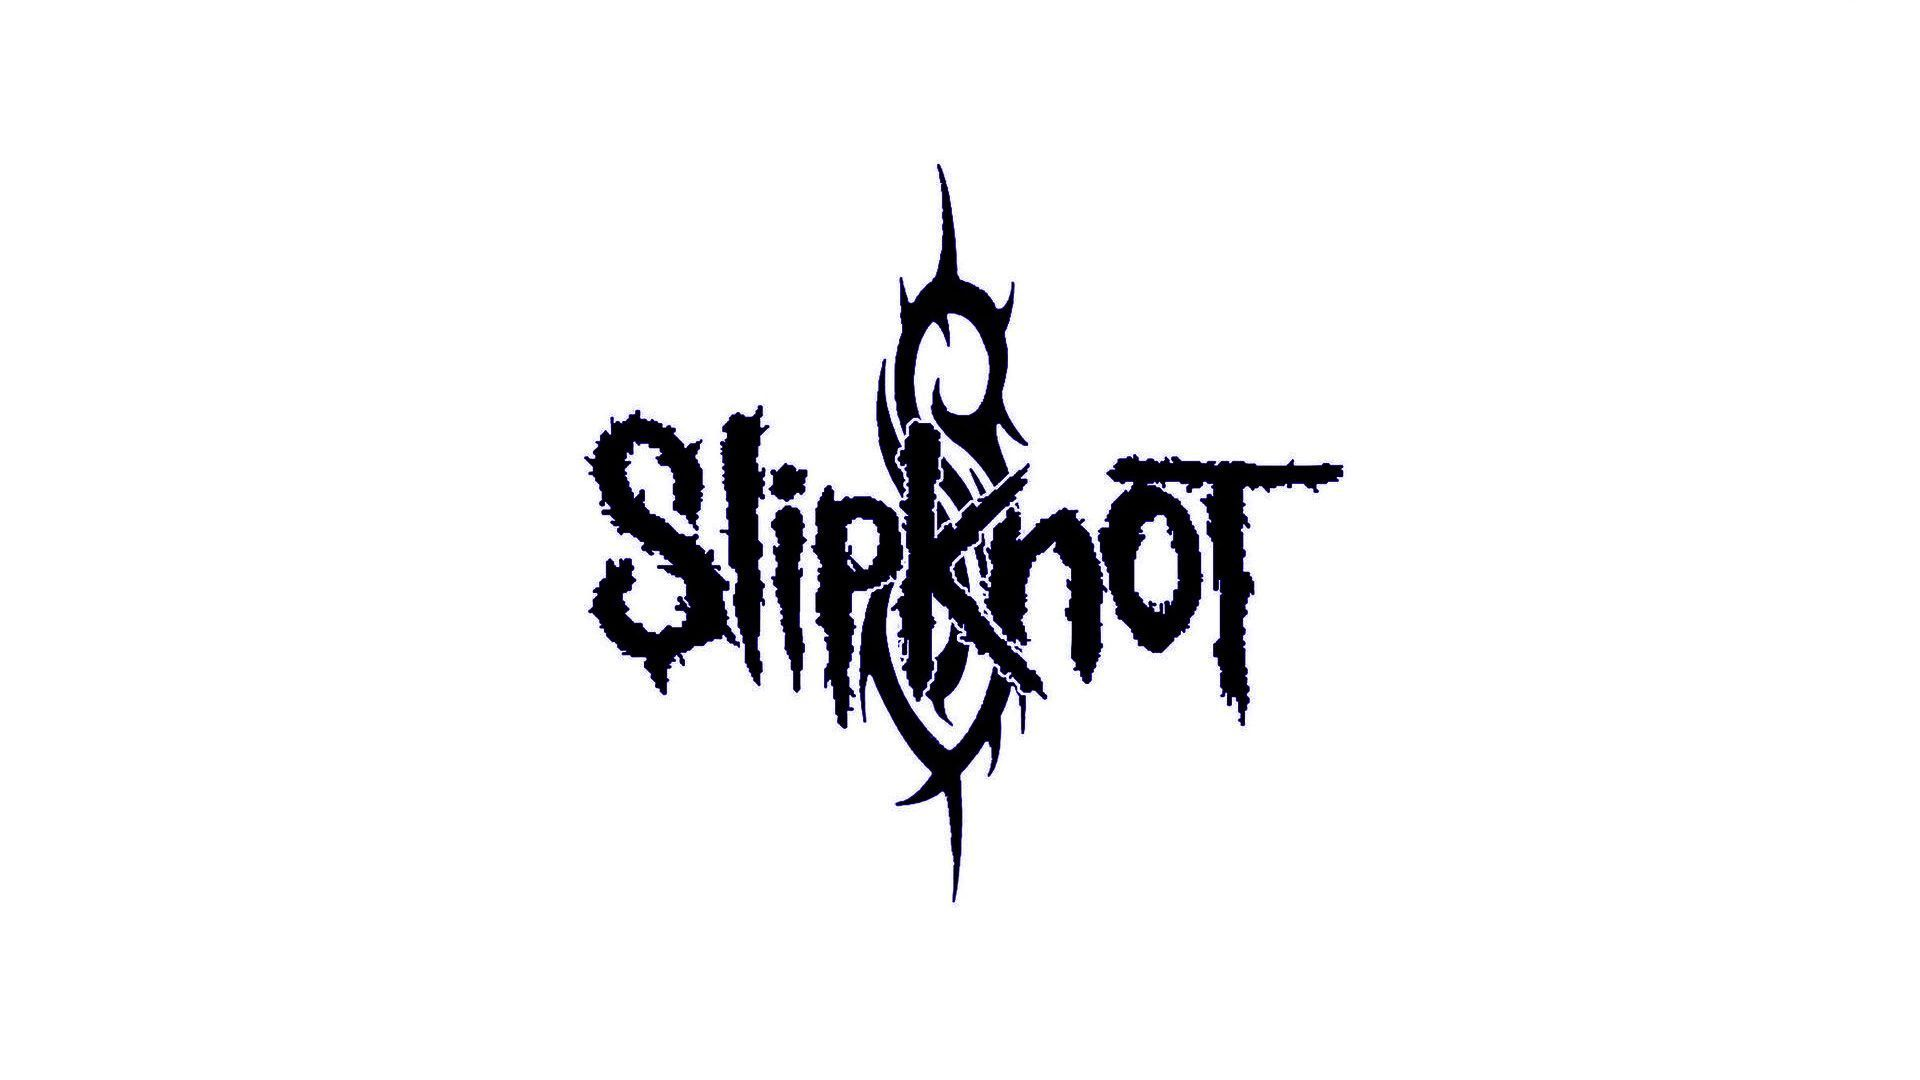 Simple Slipknot Logo Wallpapers HD HD Wallpapers 1920x1080